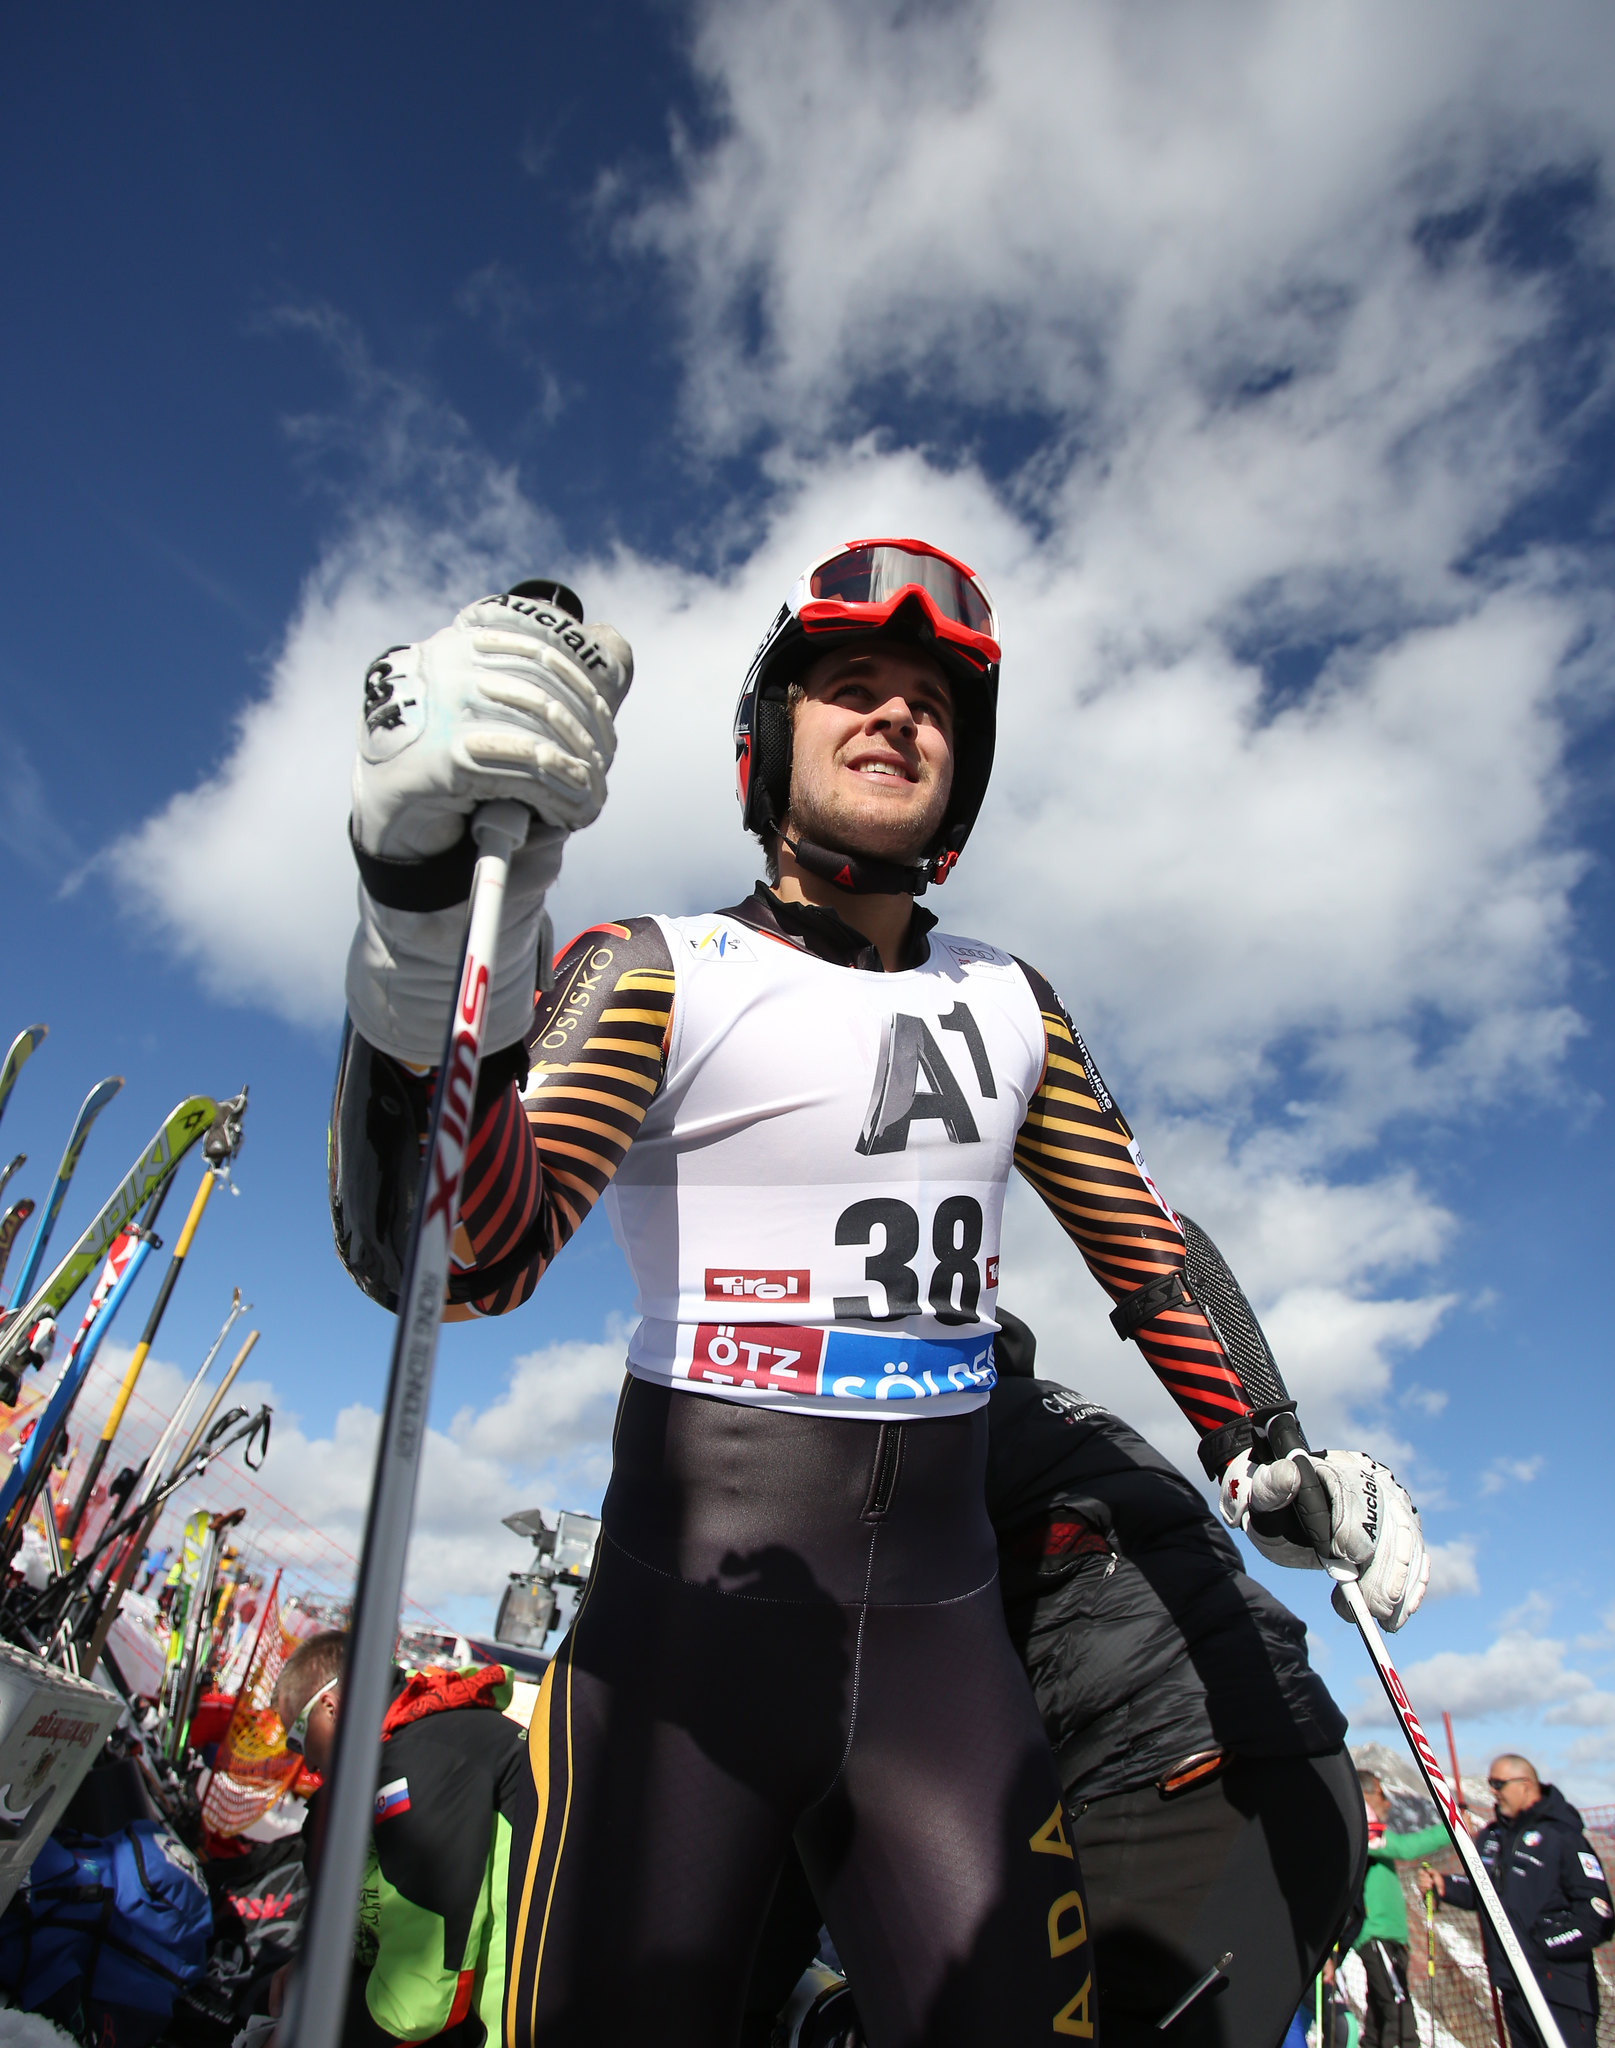 Philip Brown prepares for the first race of the season in Soelden, AUT.